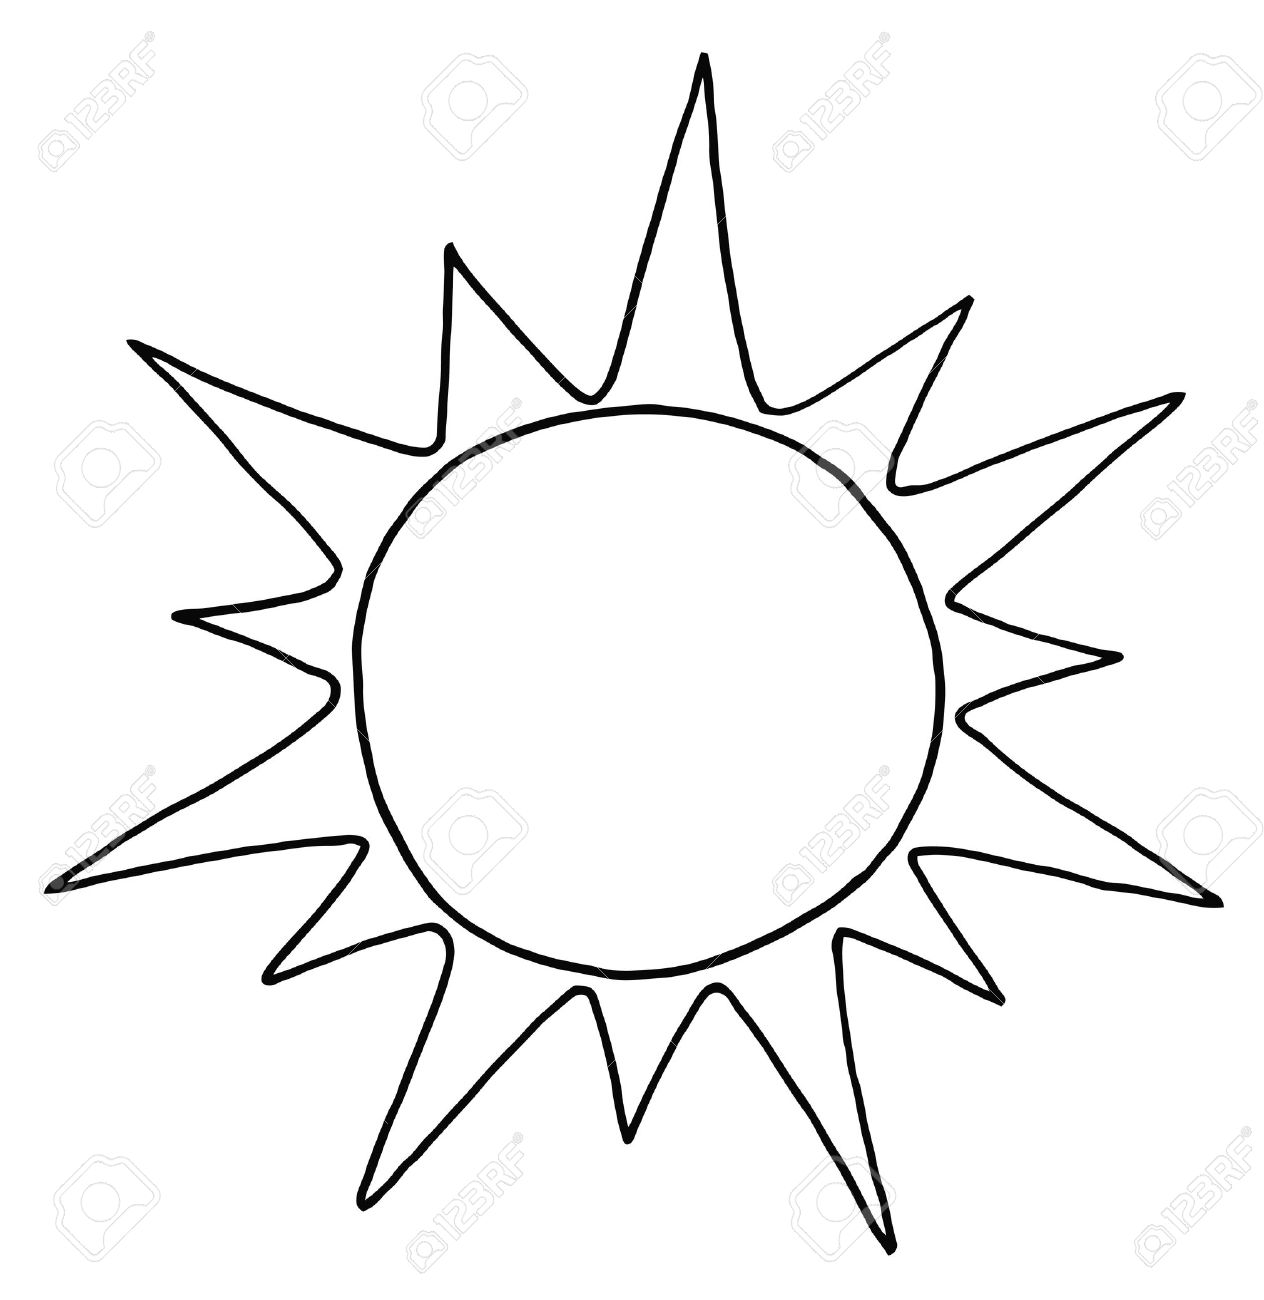 Clipart sun black and white - .